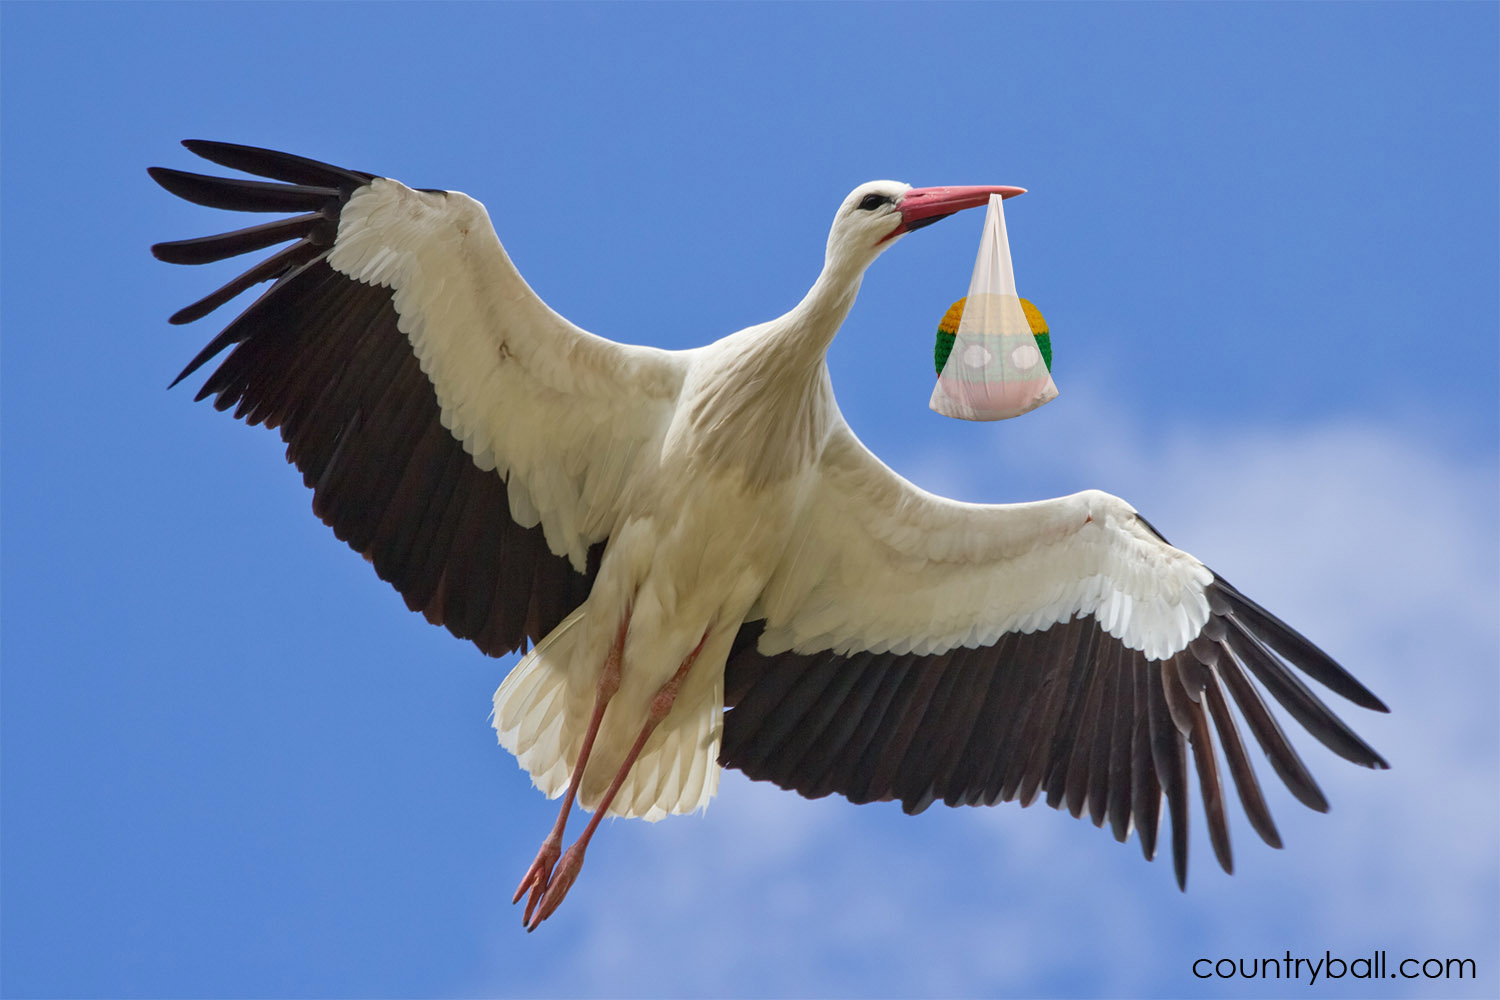 A Stork Bringing a New Lithuaniaball